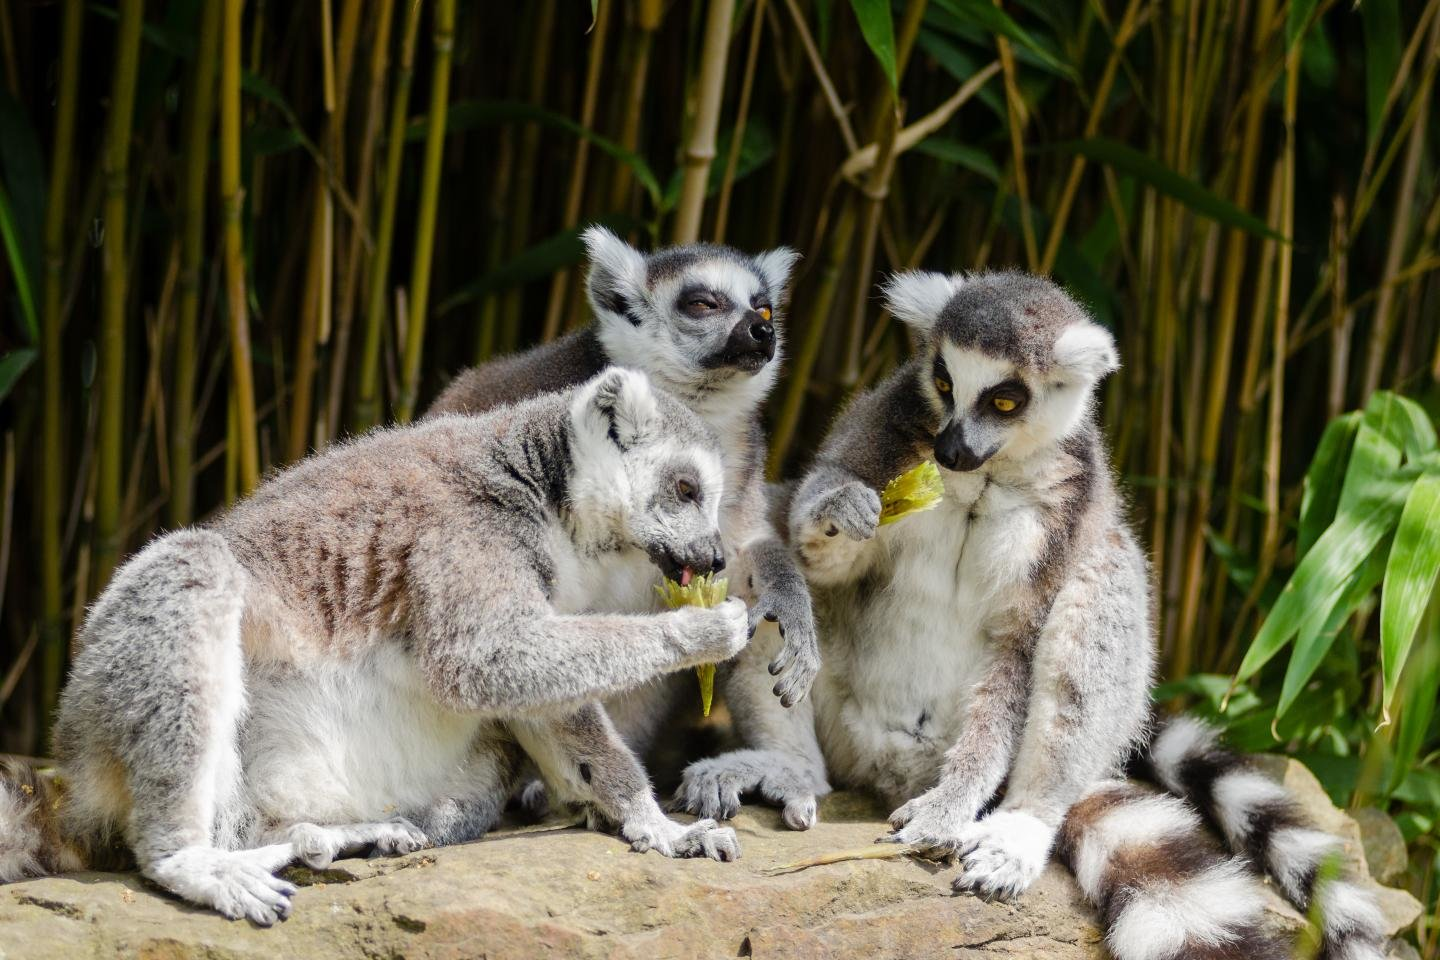 Download hd 1440x960 Lemur desktop background ID:53209 for free